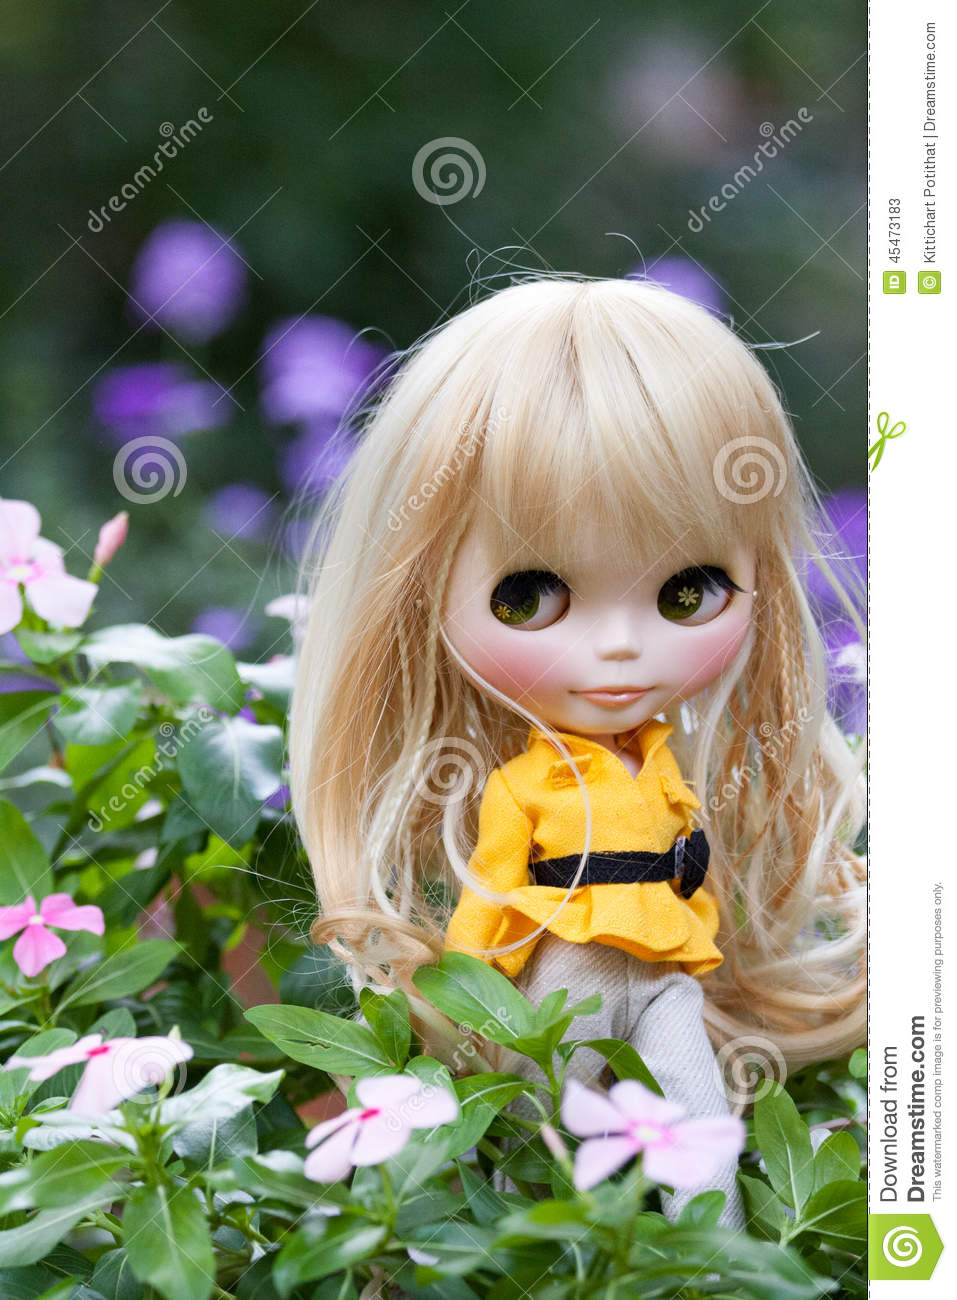 beautiful doll in the garden - The Doll In The Garden